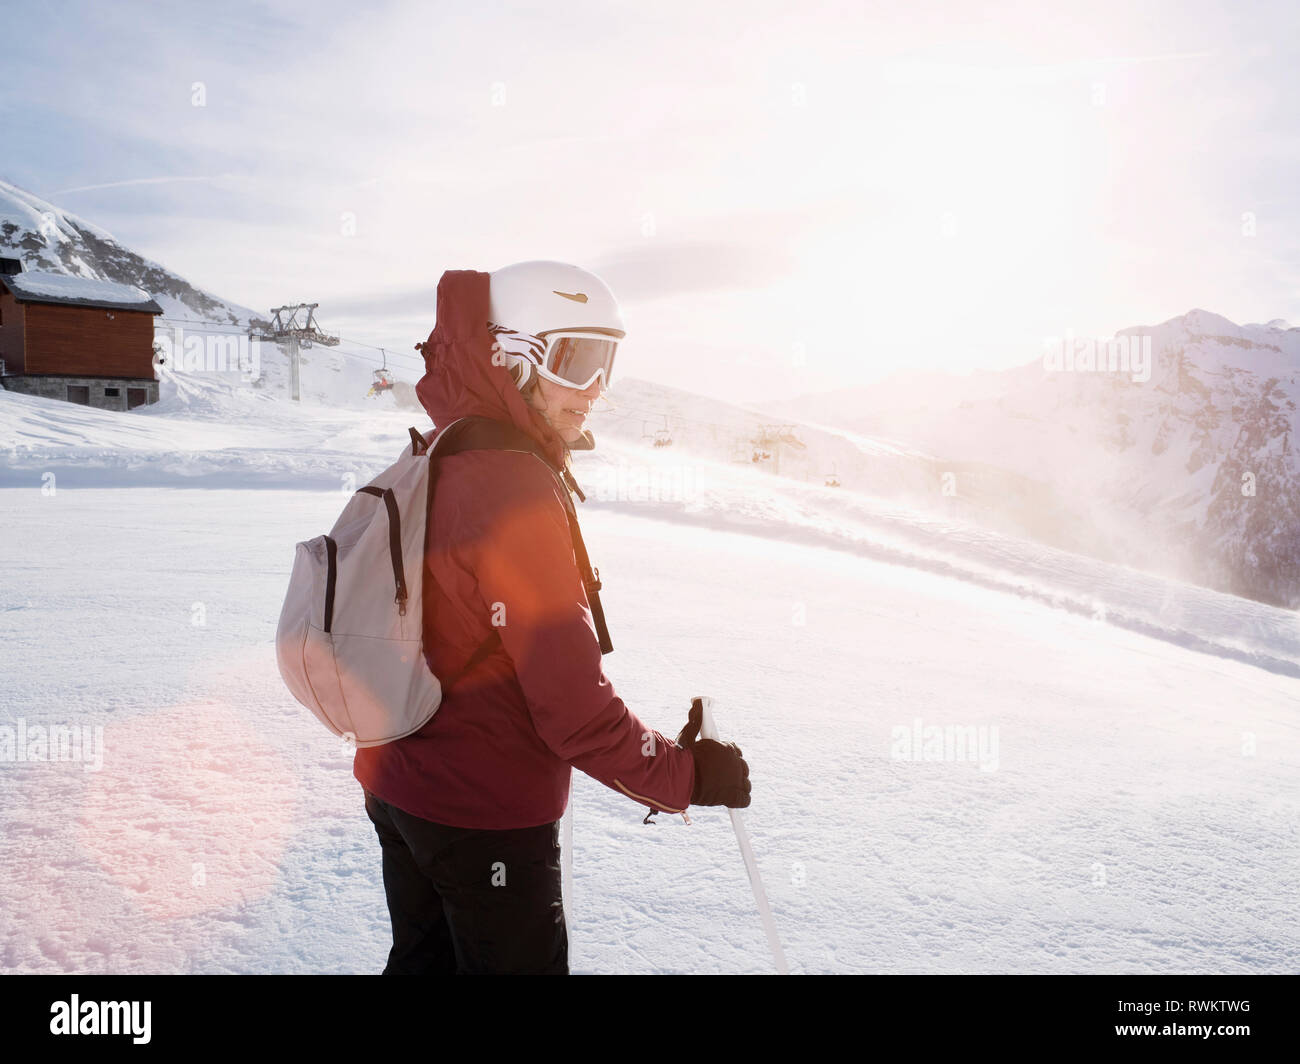 Young woman skier wearing helmet and ski goggles in snow covered landscape,  Alpe Ciamporino, Piemonte, Italy - Stock Image